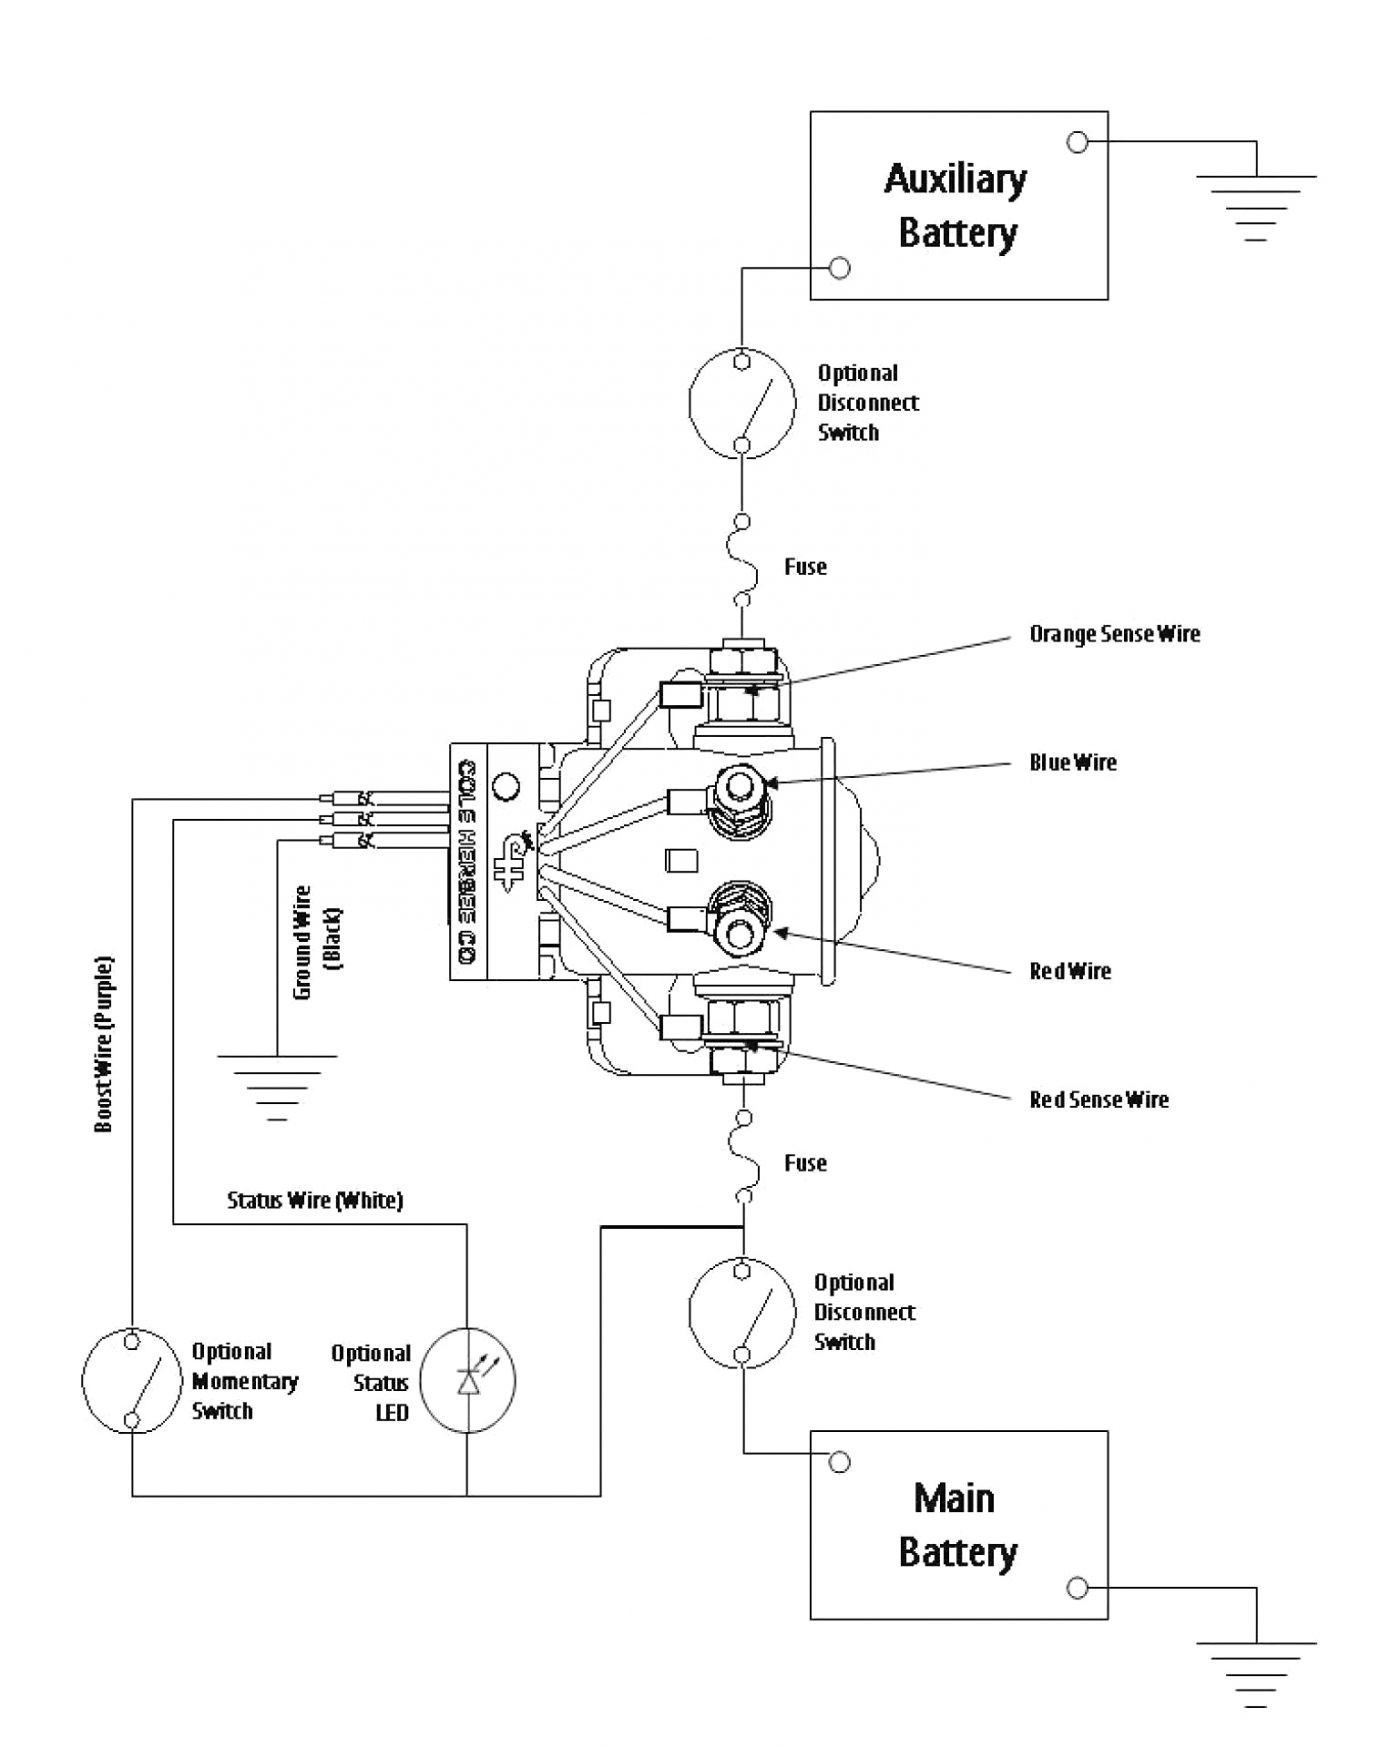 cole hersee battery isolator wiring diagram Download-Battery Relay Wiring Diagram Inspirationa Wiring Diagram for Cole Hersee 200a Smart Battery isolator Ac 9-e